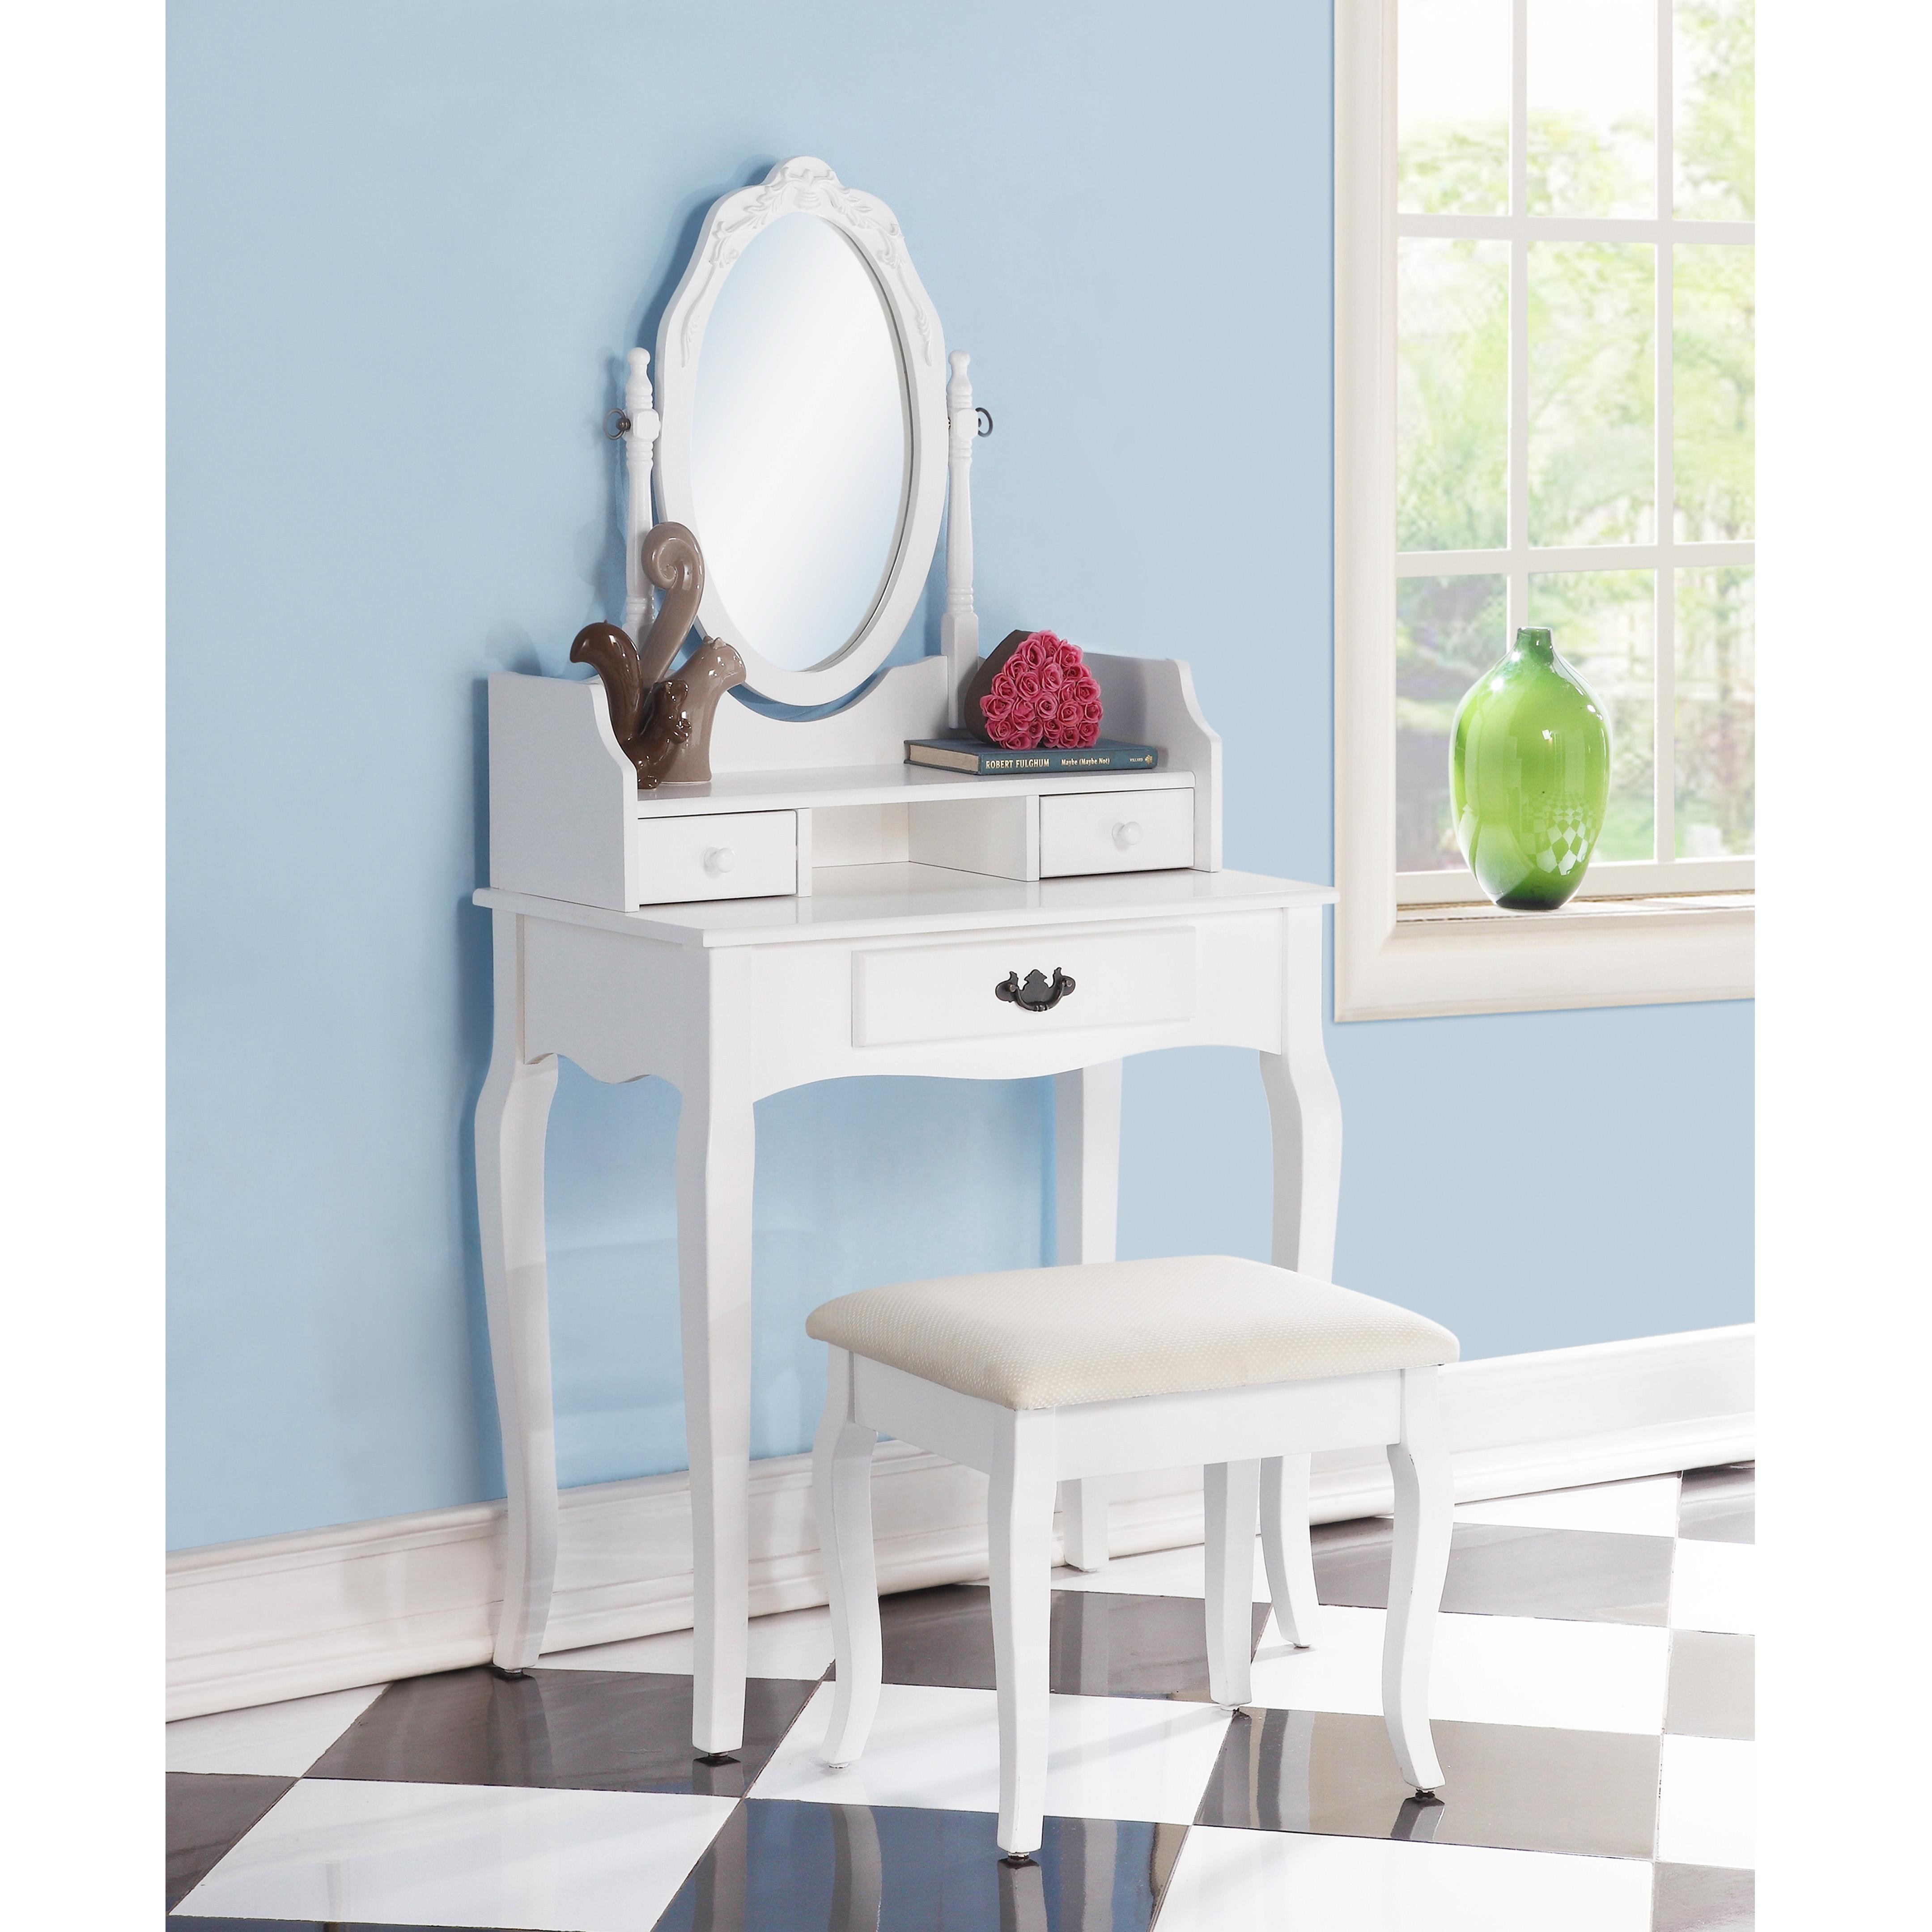 Roundhill Furniture Ribbon Wood Make Up Vanity Table And Stool Set